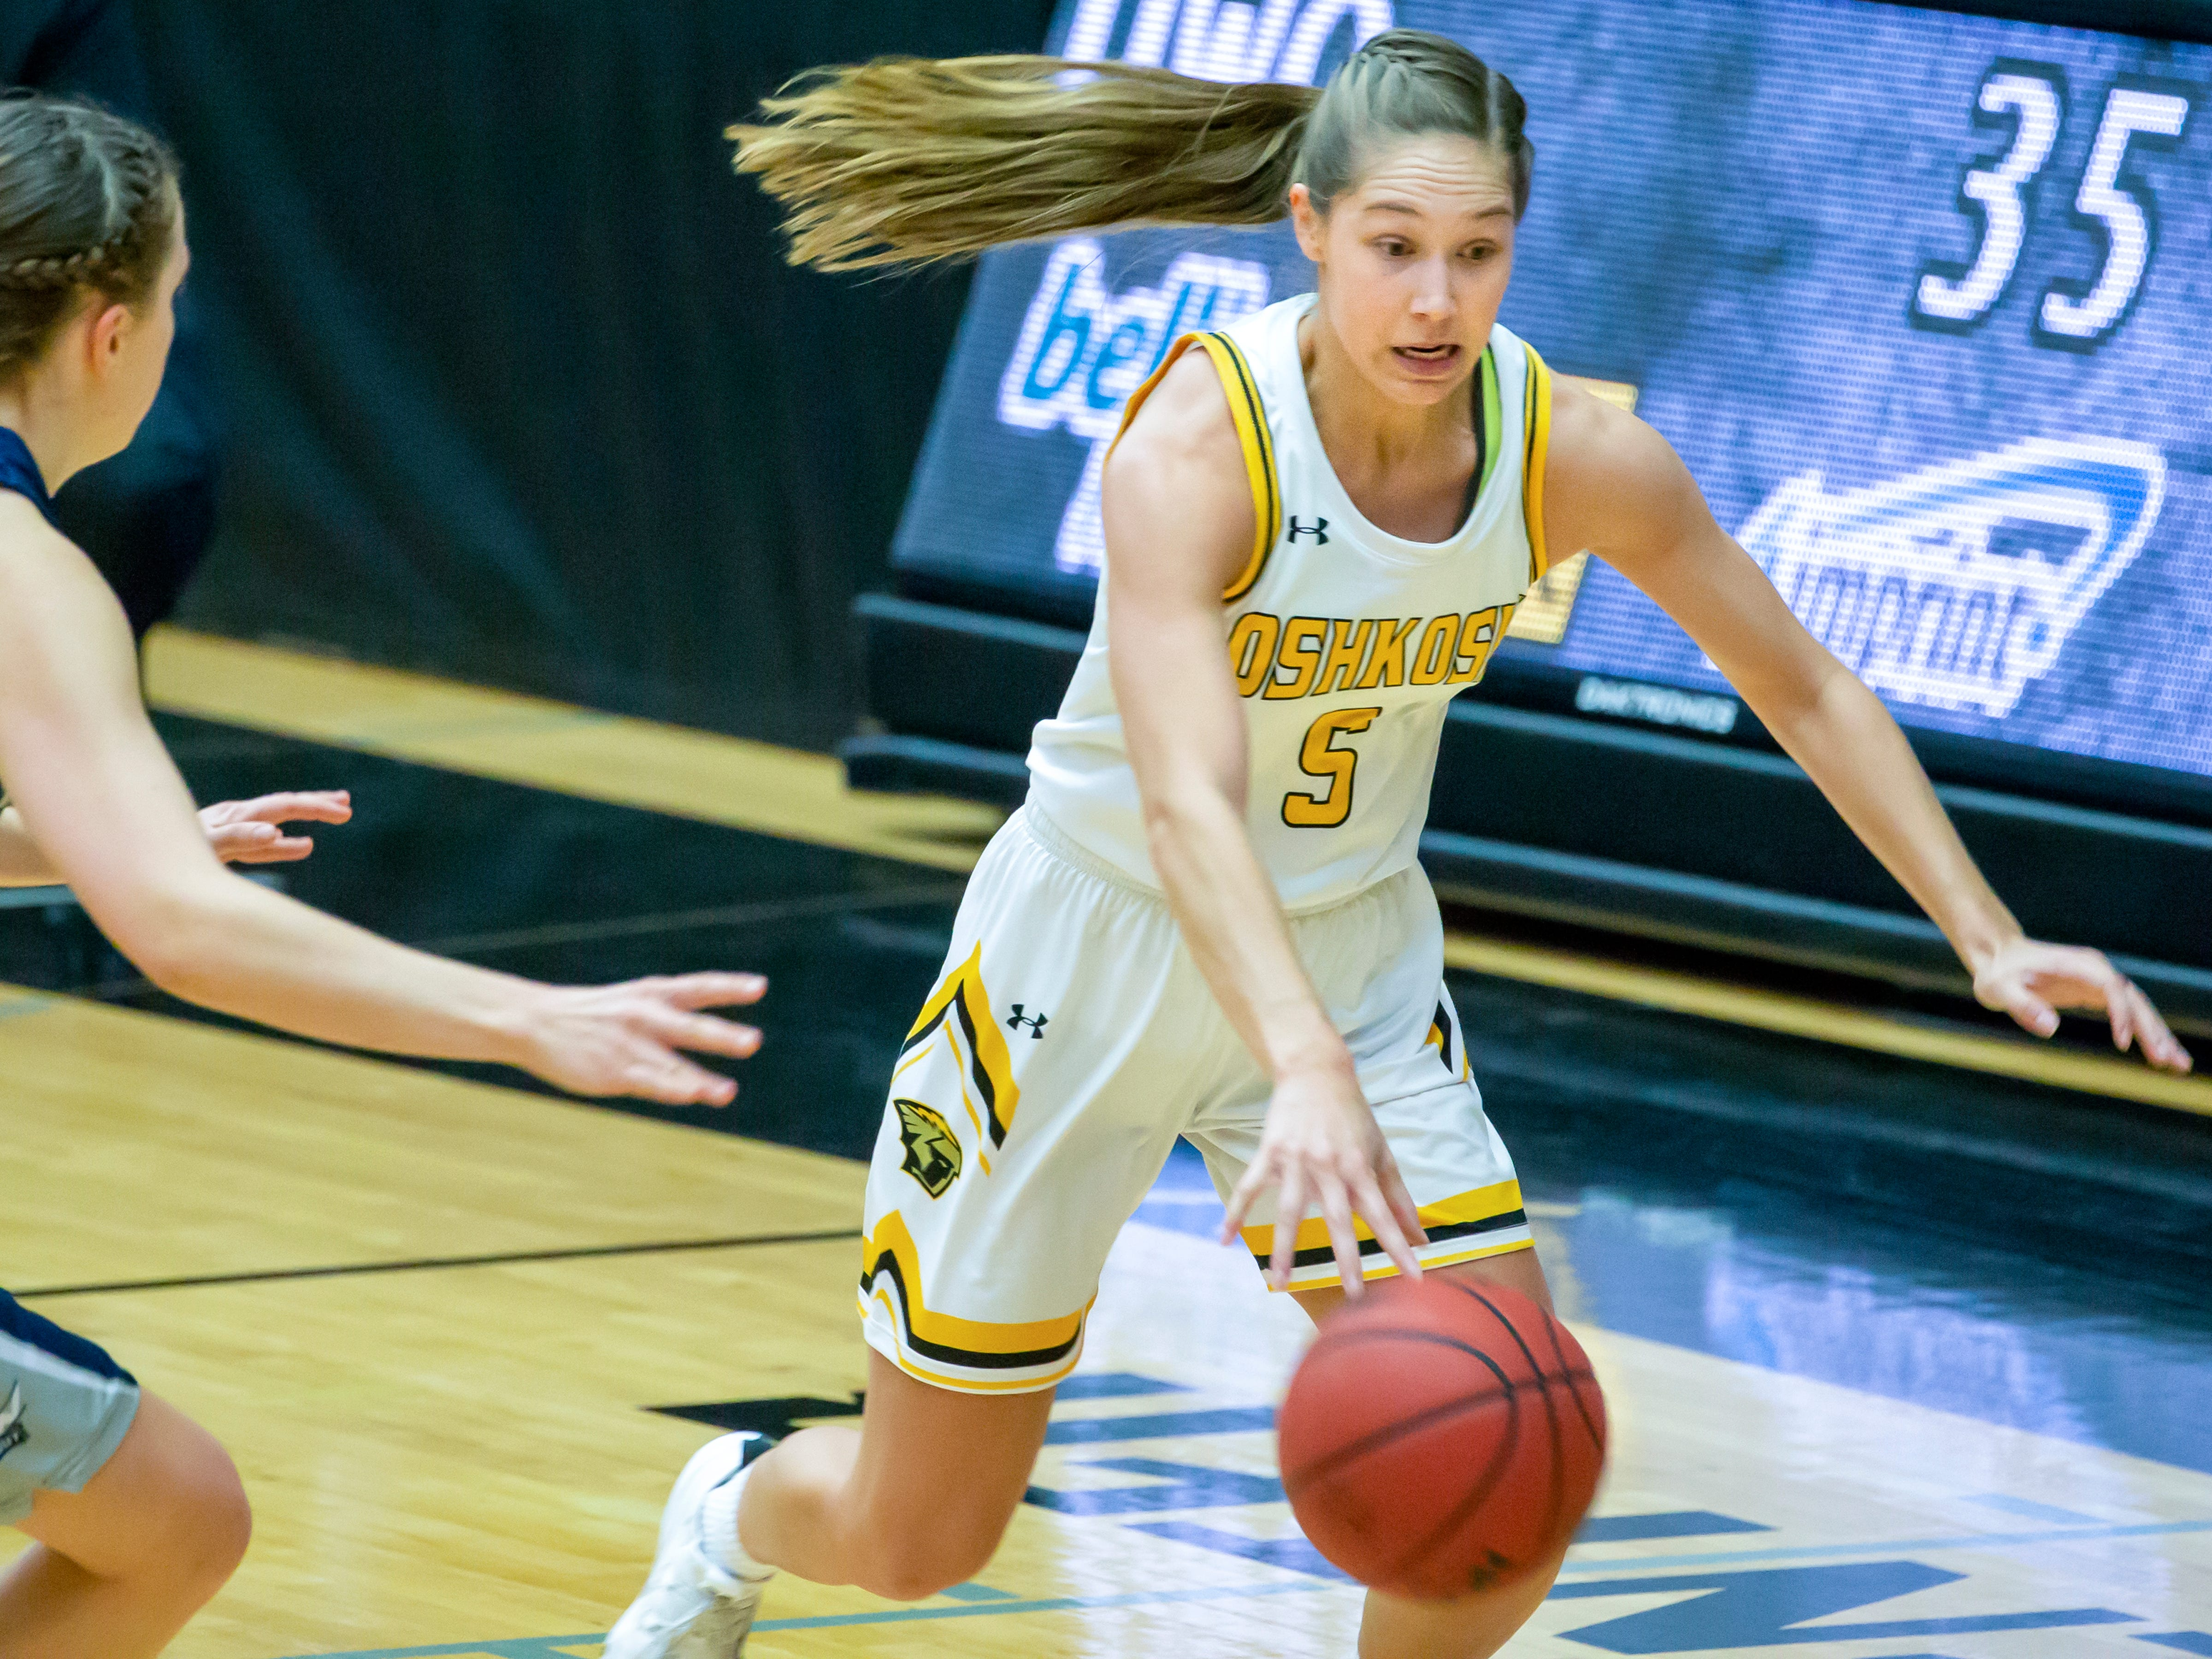 UW-Oshkosh's Chloe Pustina drives the ball across the court playing against UW-Stout at the Kolf Sports Center on Saturday, January 5, 2019.